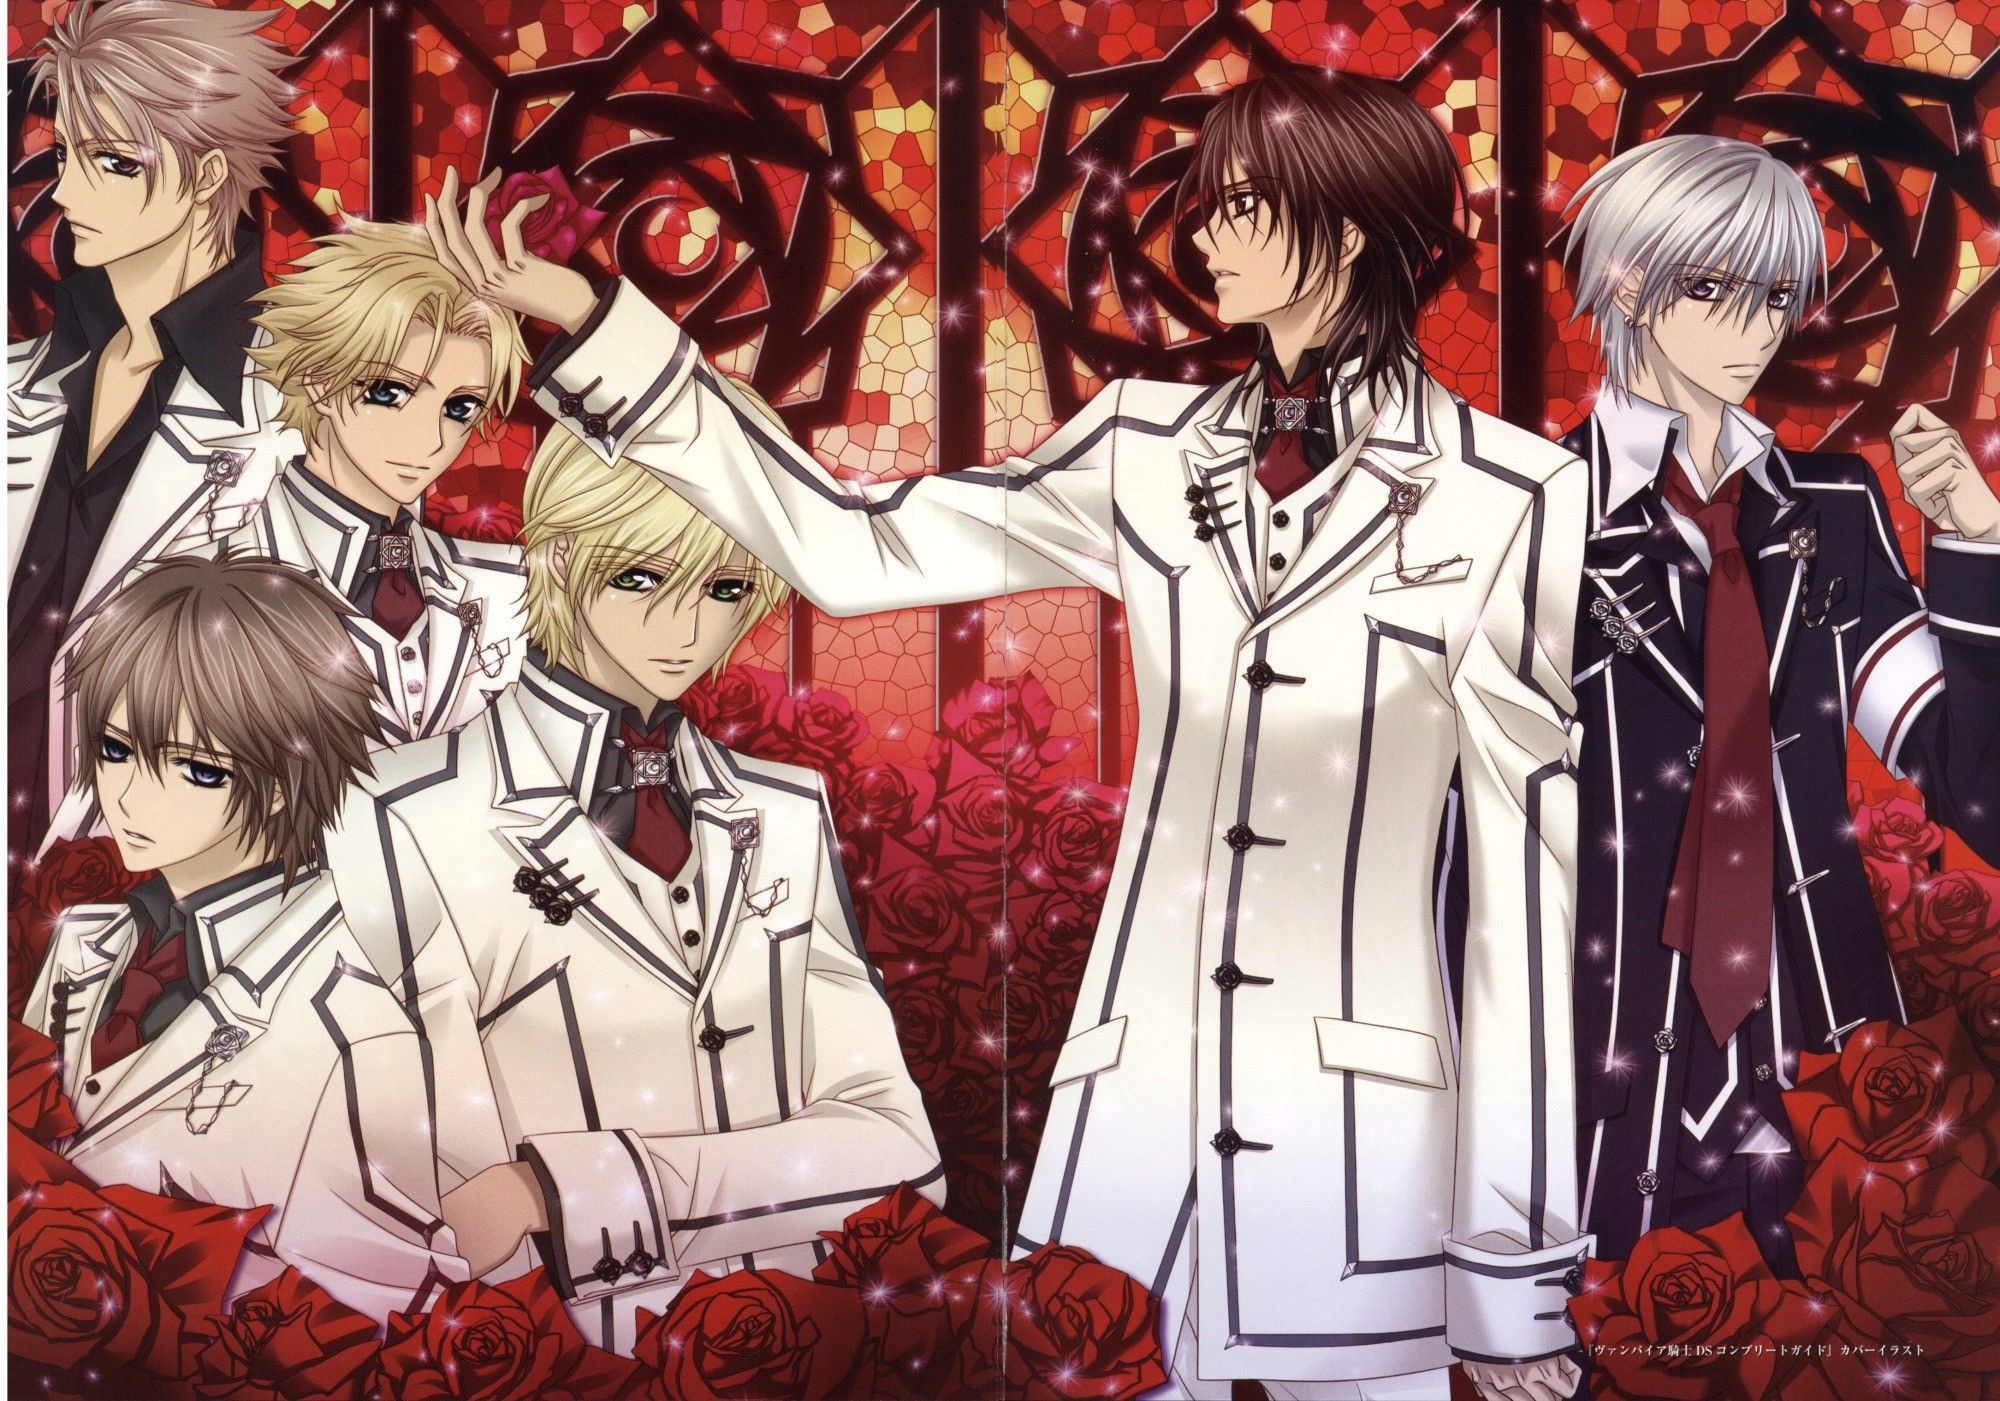 The Vampire Knight Manga Series And Its Anime Adaptation Features